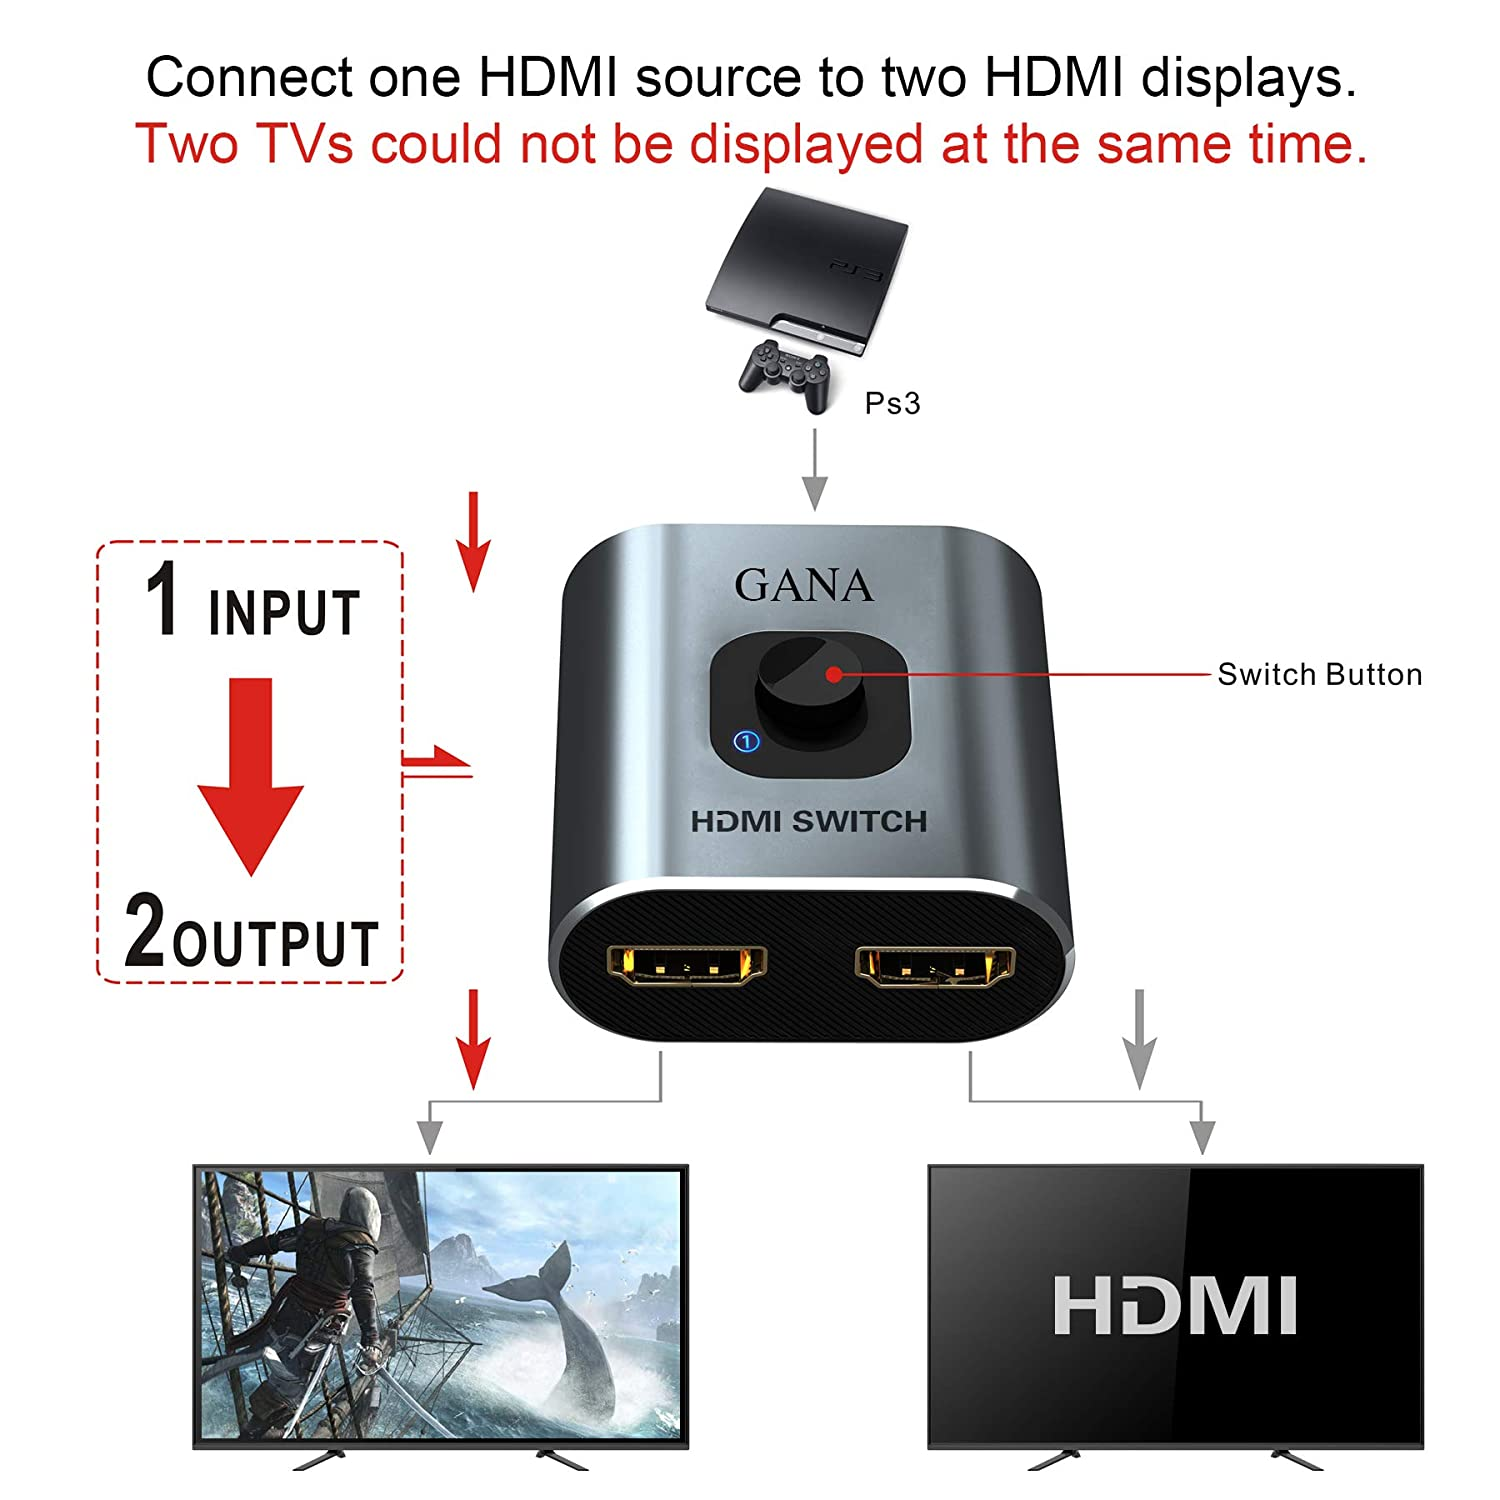 HDMI Switch GANA Aluminio HDMI Splitter Bidireccional Entradas 2 a 1 Salida o 1 IN 2 OUT Soporta HD 4K 3D 1080P HD para TV //Blu-ray//Firestick//Xbox//PS3//PS4